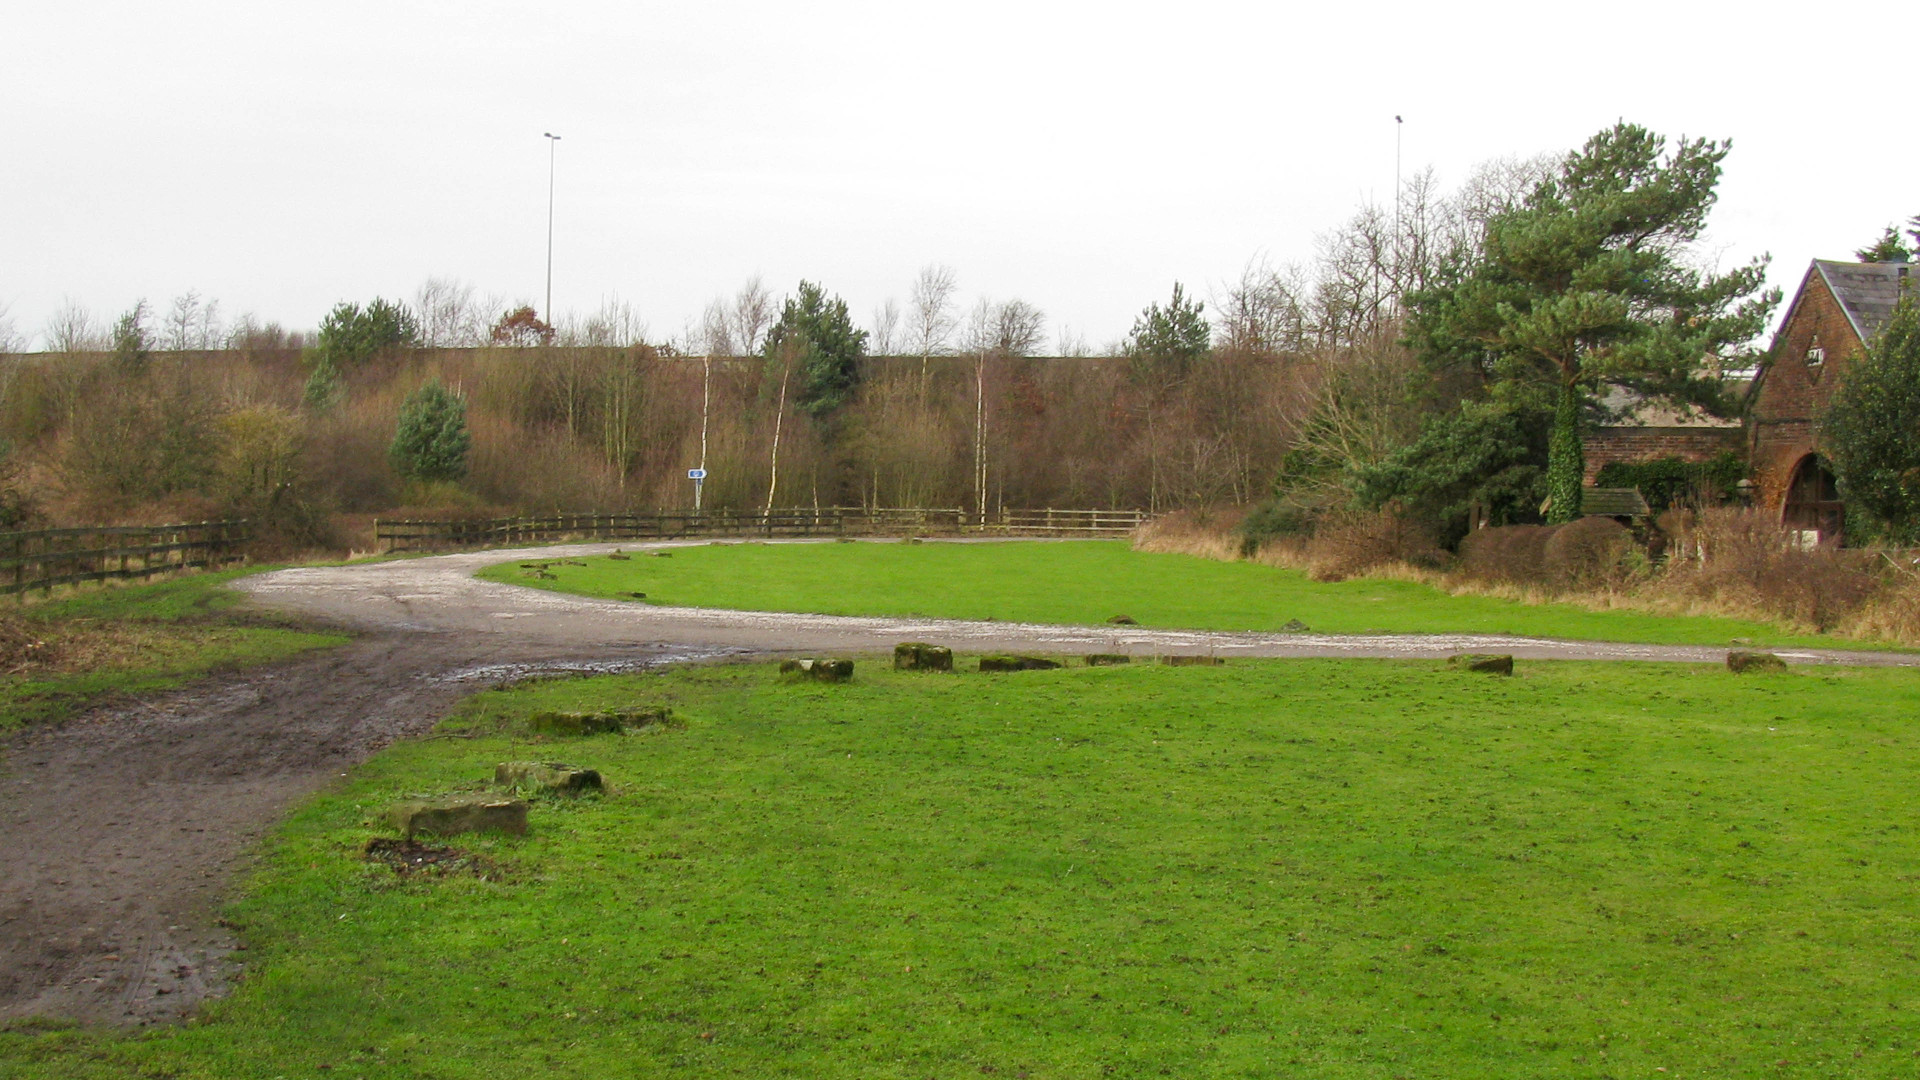 The motorway embankment presents an obstacle to restoration